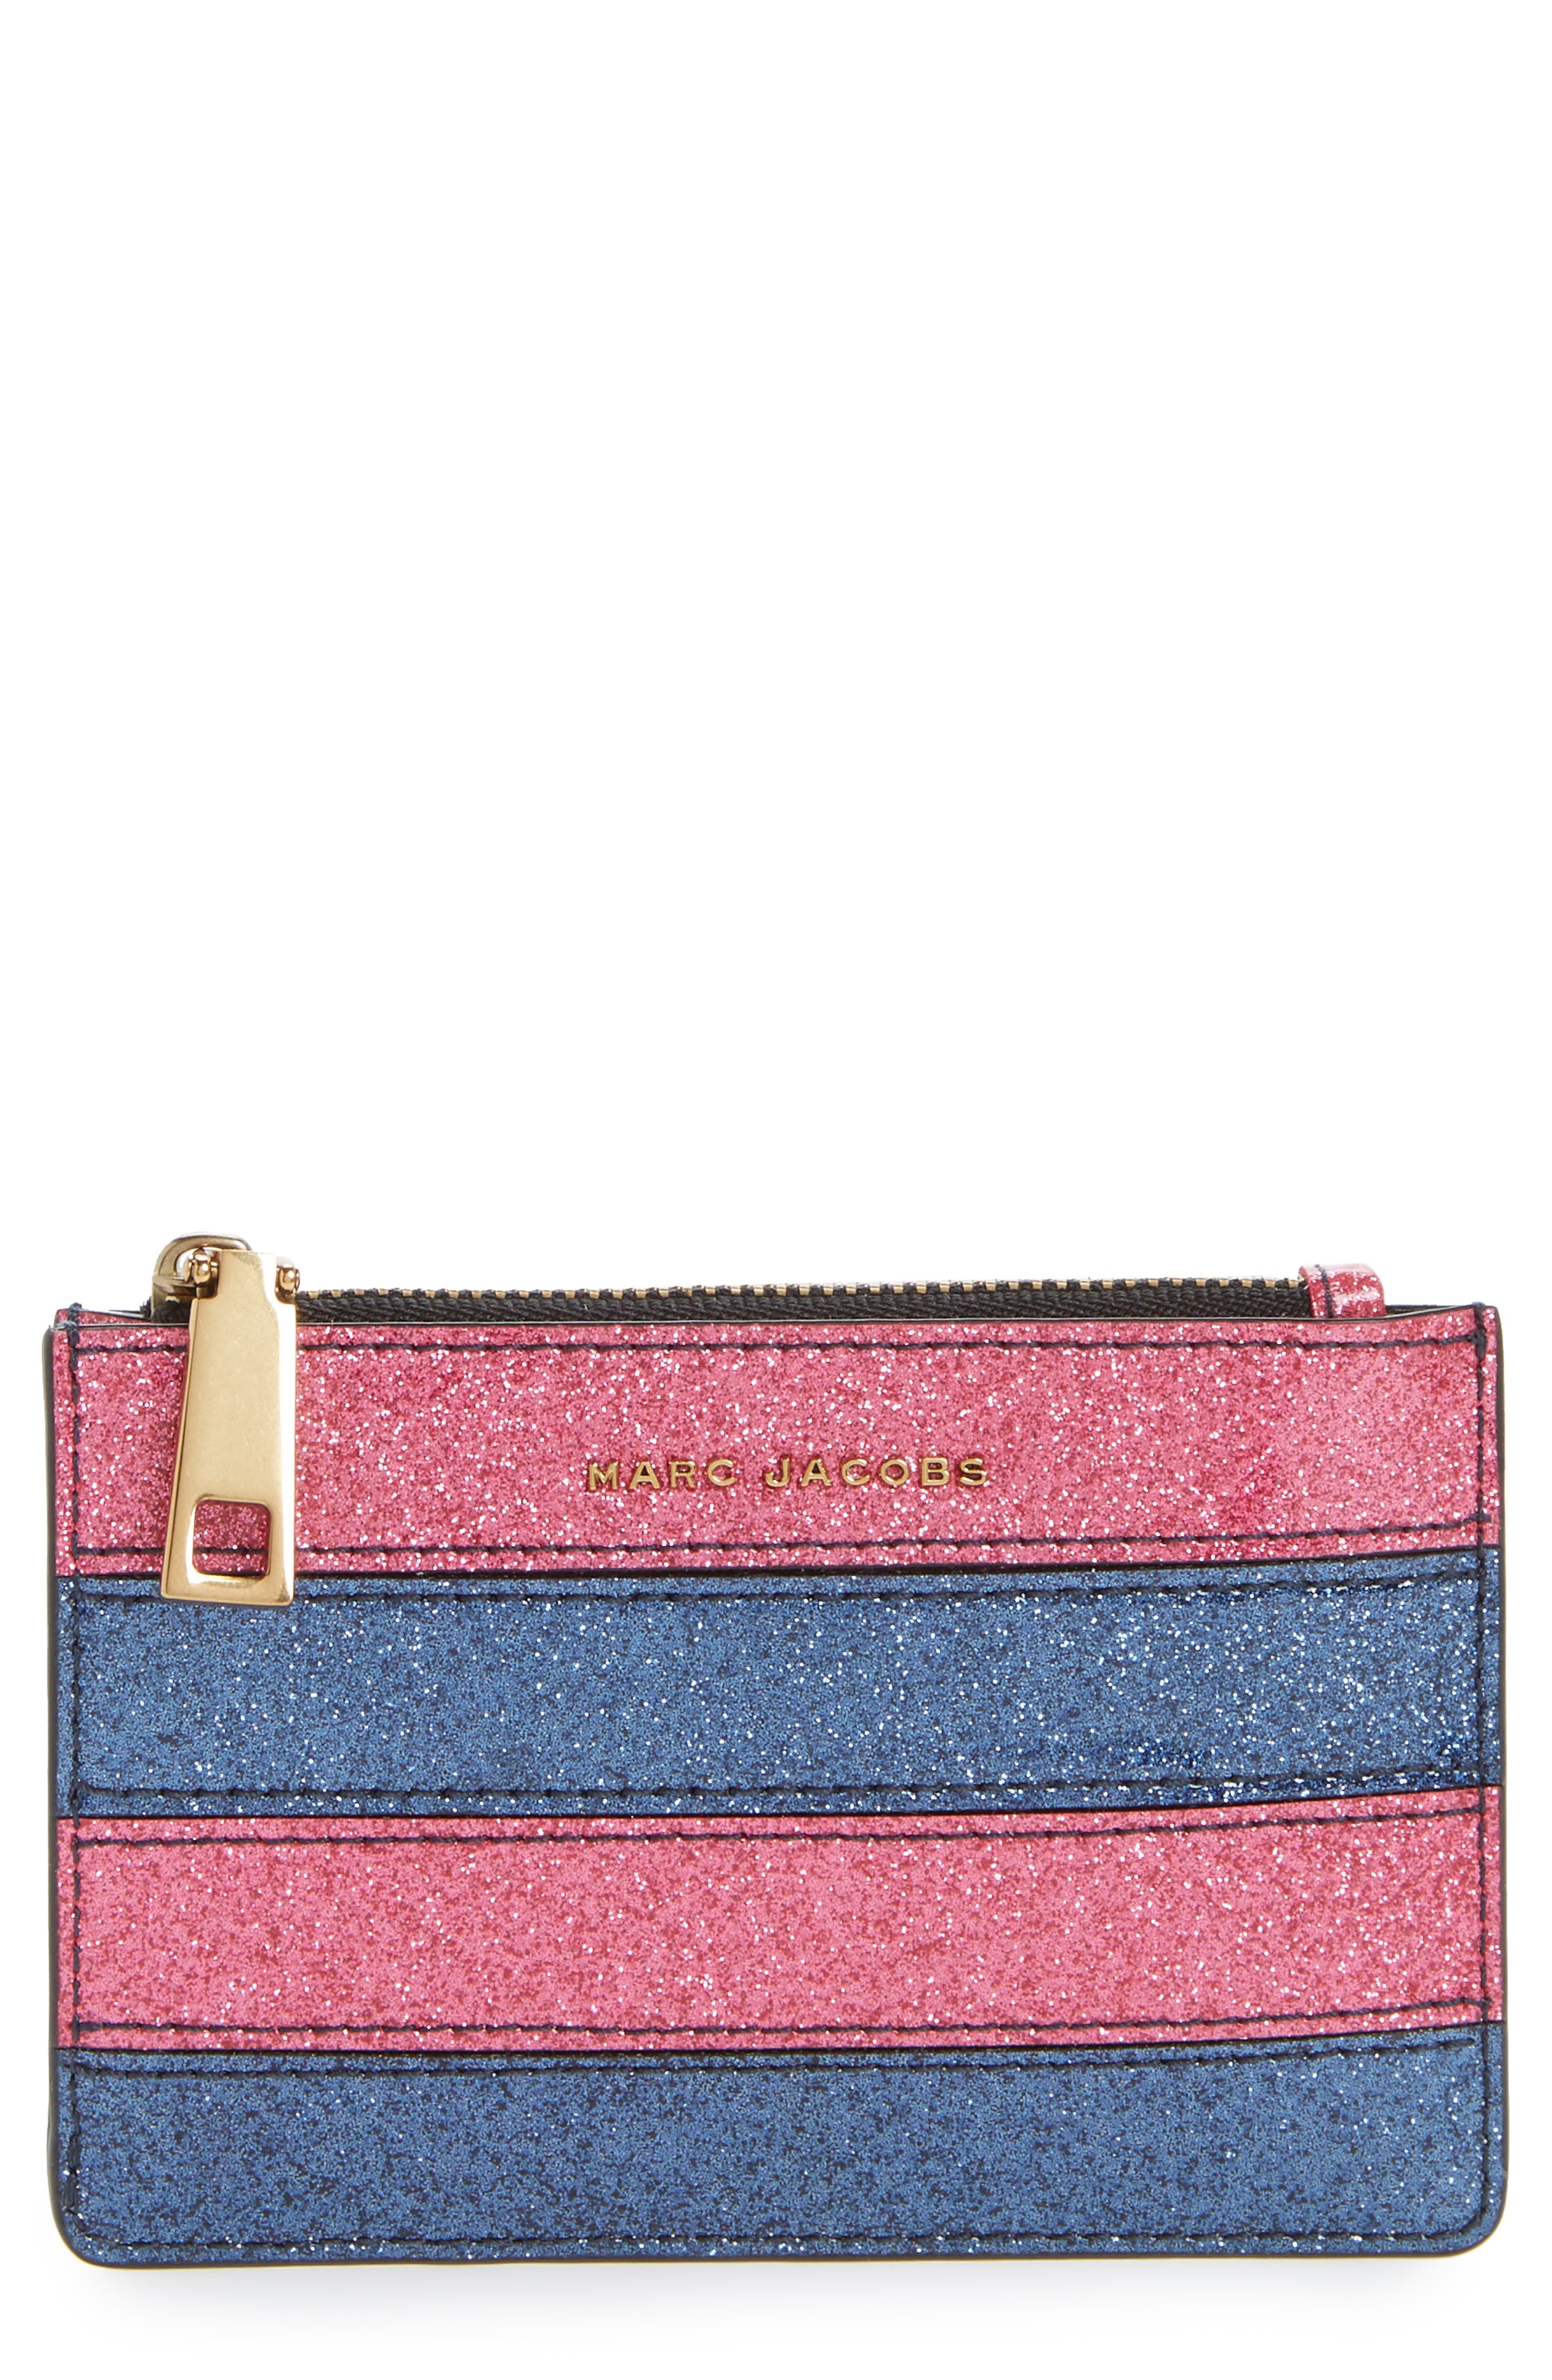 MARC JACOBS Glitter Stripe Leather Wallet